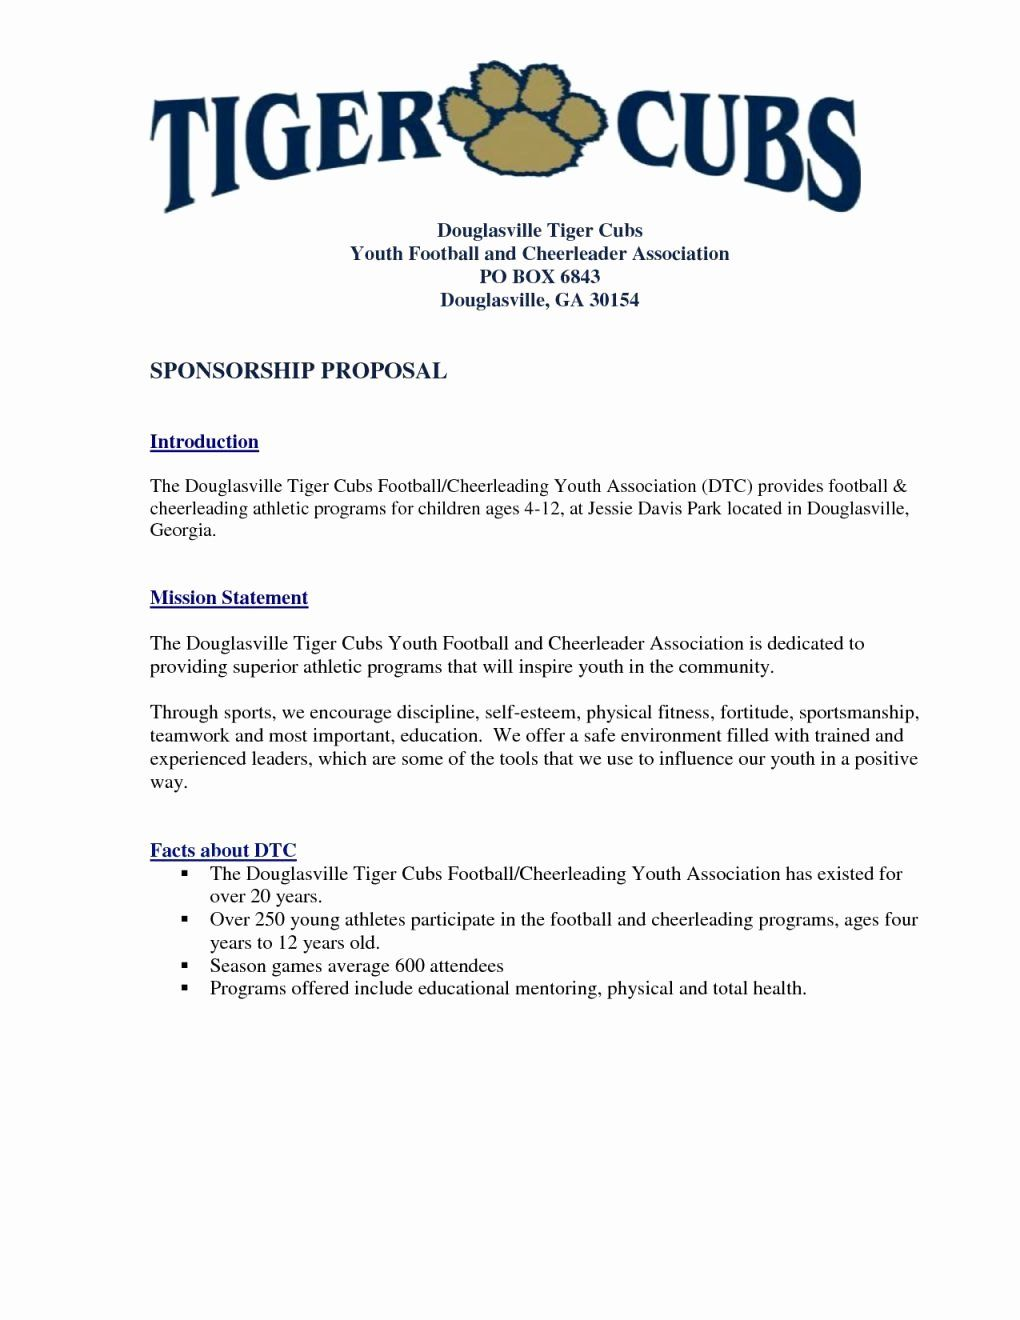 Sports Sponsorship Proposal Template Luxury Youth Football Sponsorship Letter Template Examples Sponsorship Letter Sponsorship Proposal Proposal Templates Sports team sponsorship proposal template